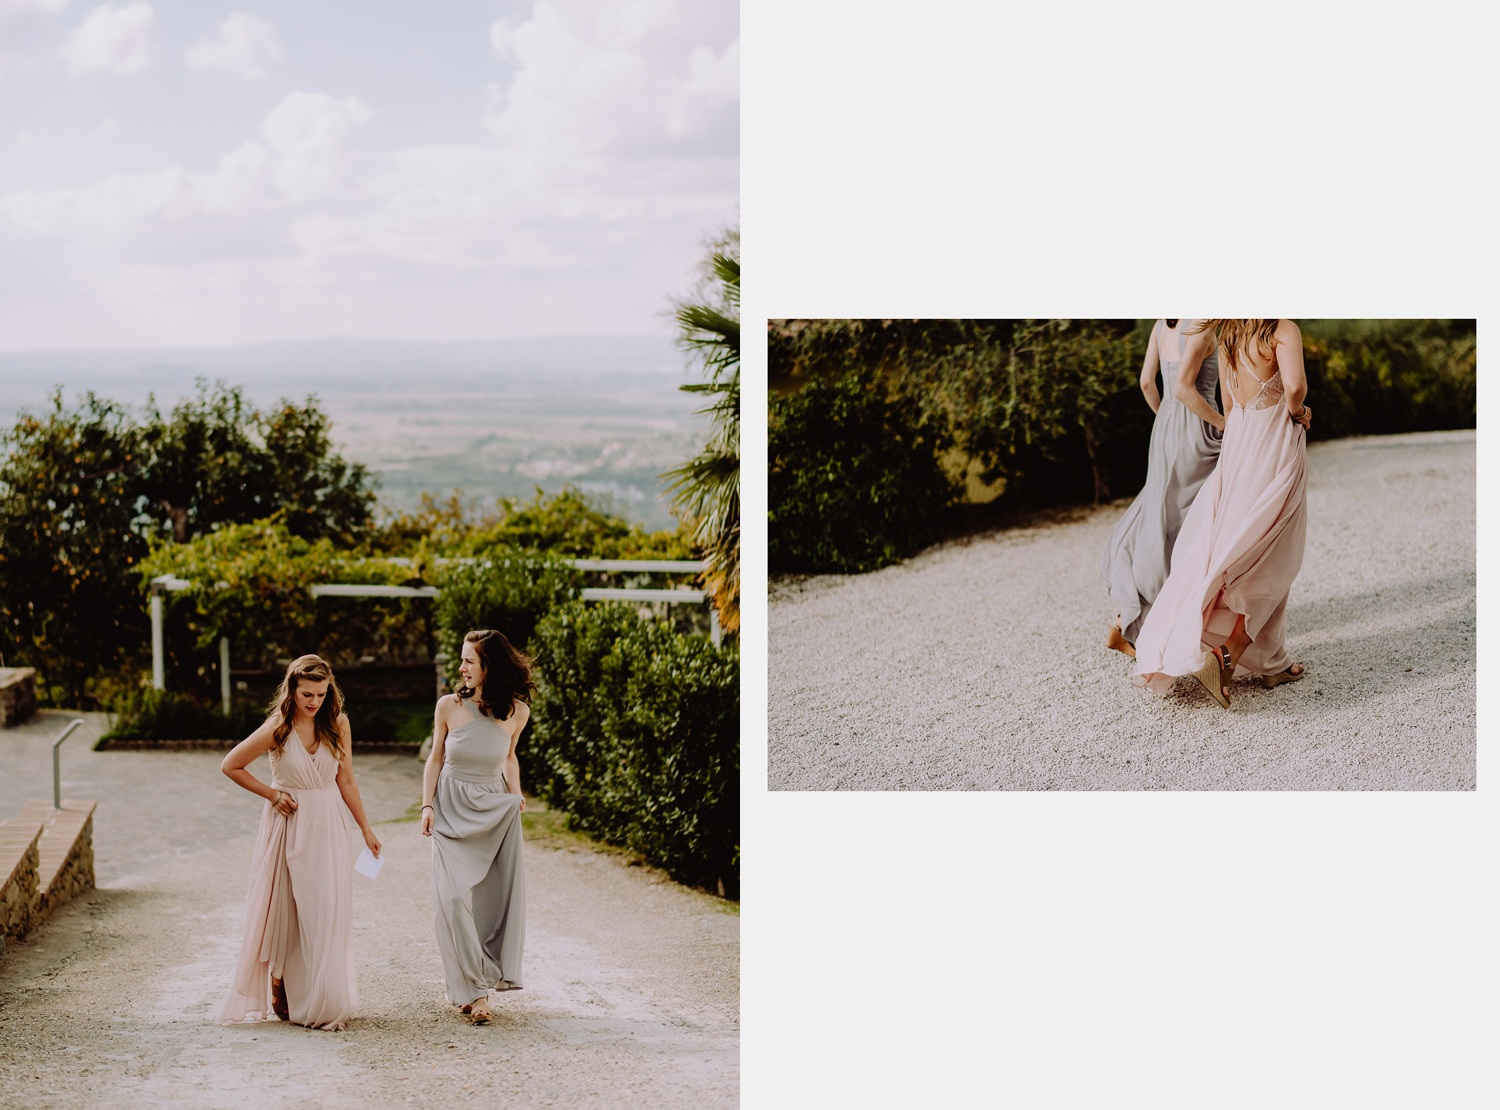 Umbria wedding photographer wedding dress gown accessories